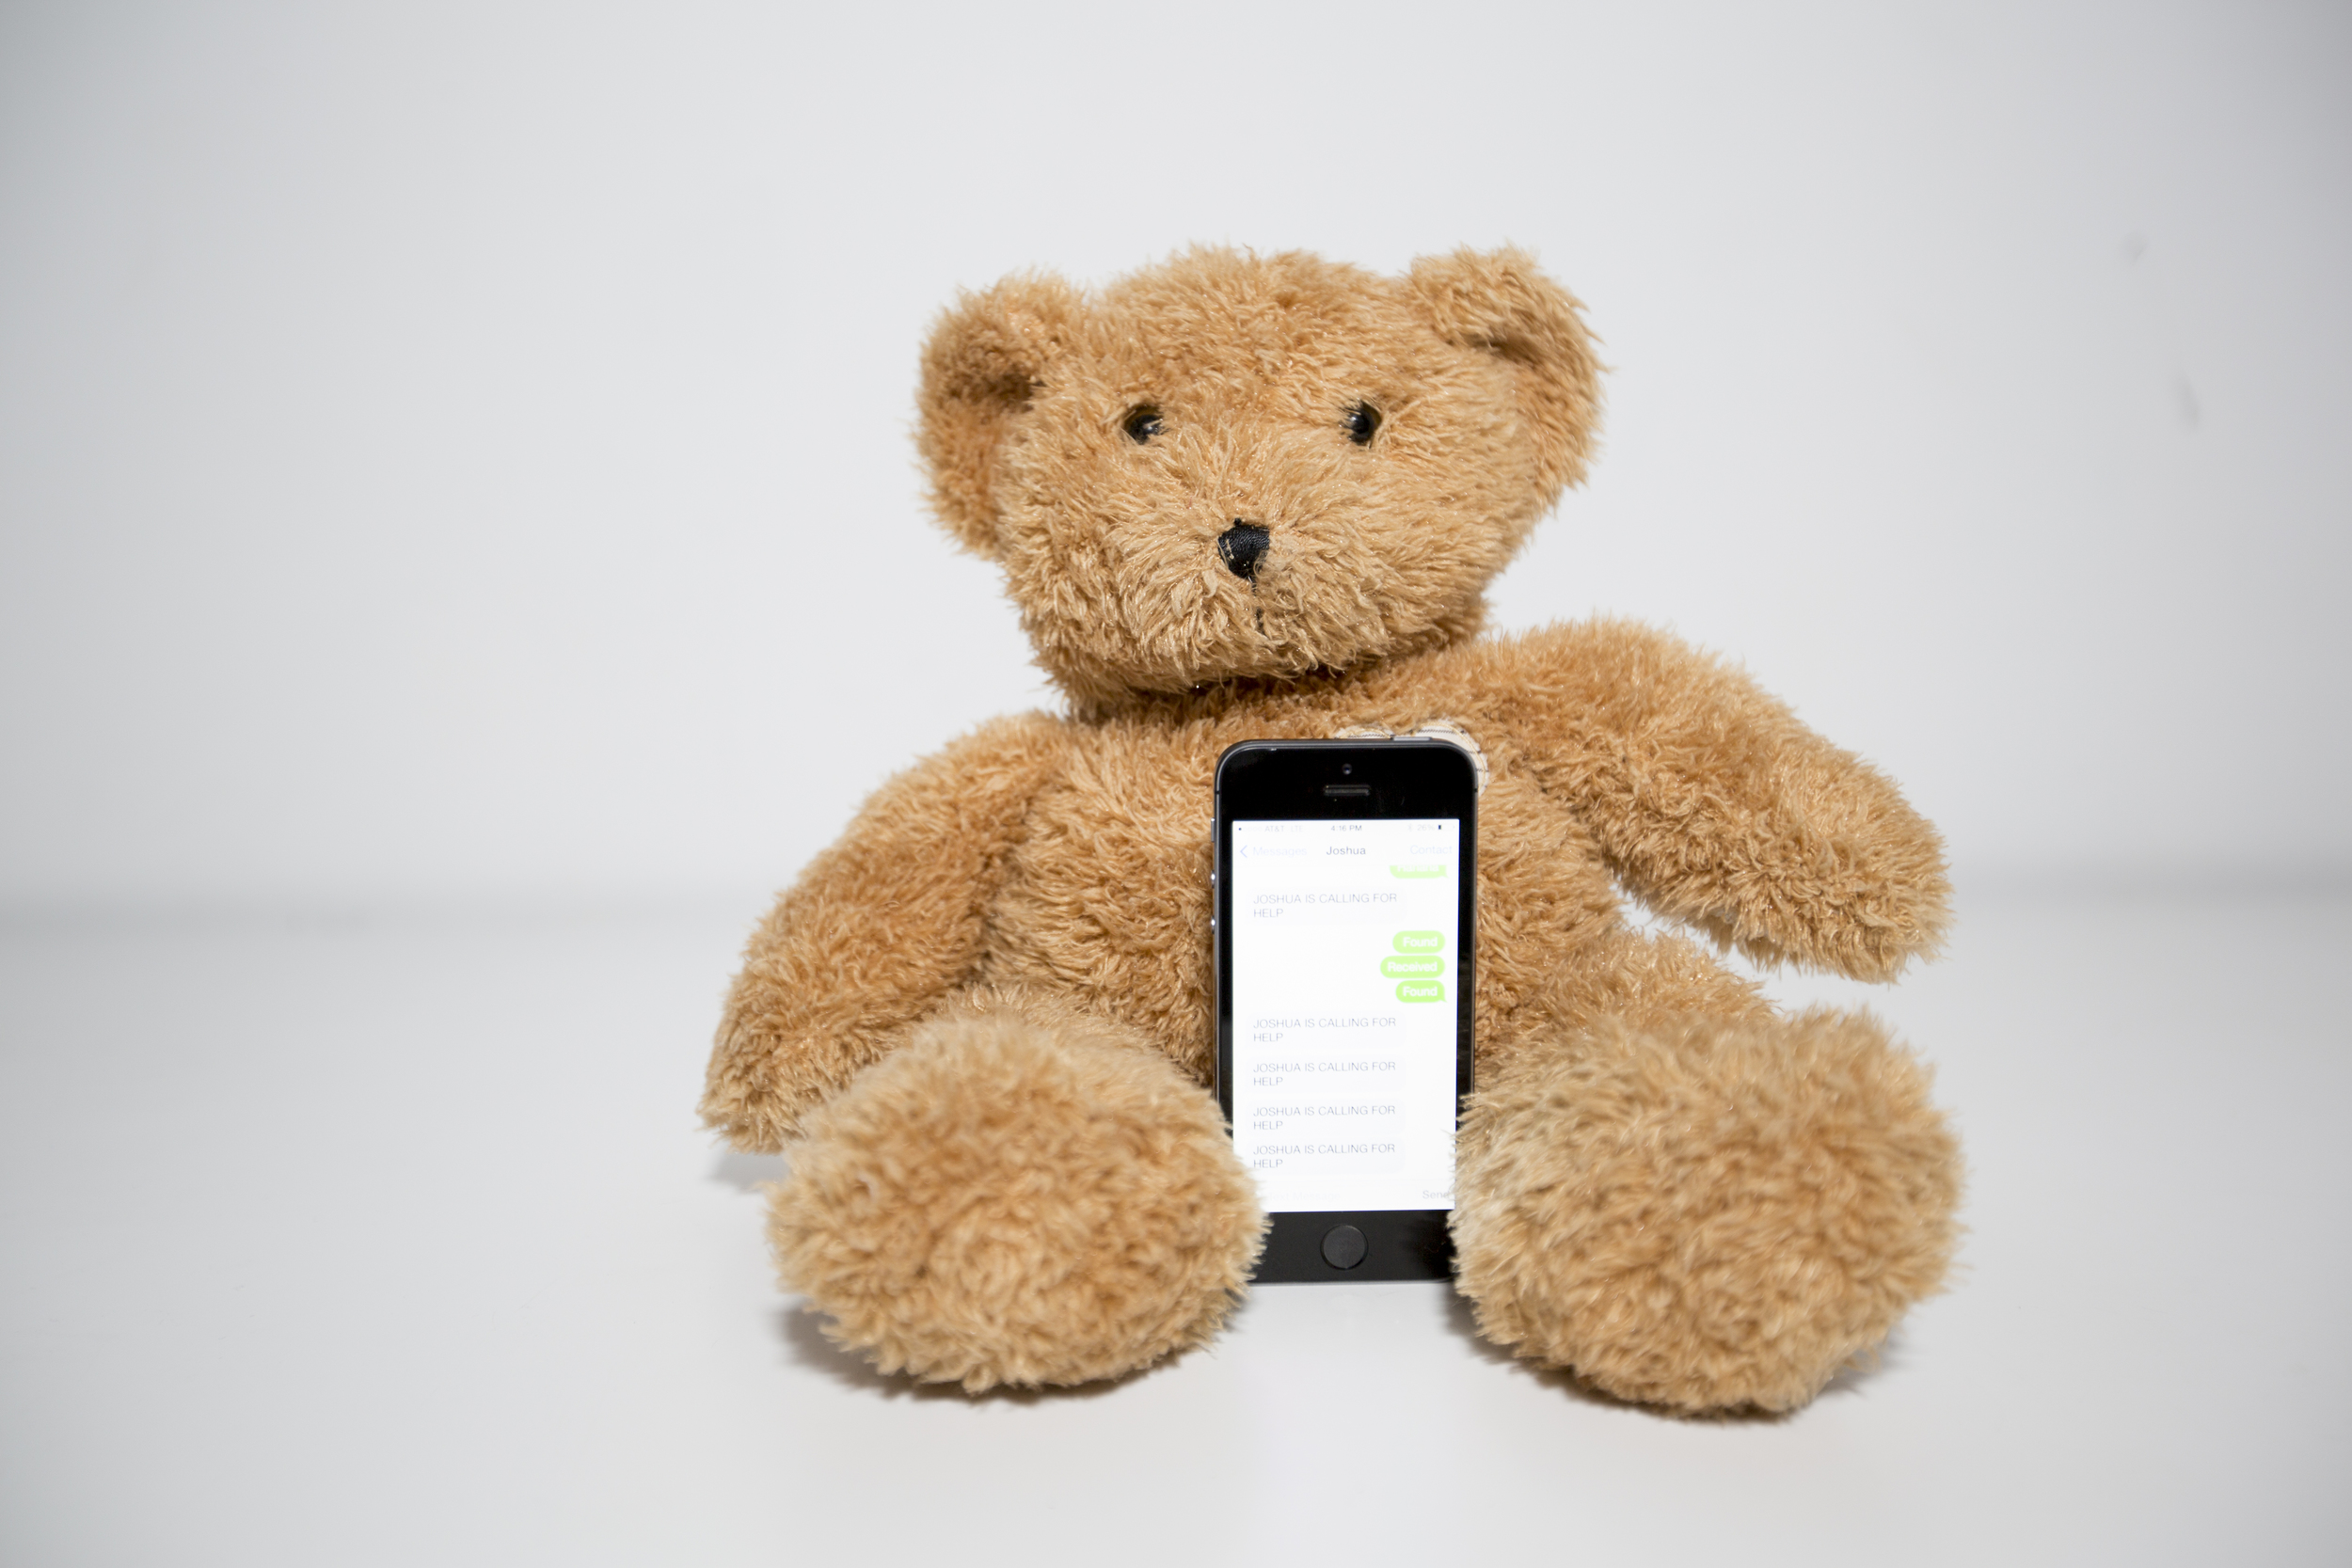 A GSM shield for the Arduino board was used to enable texting to and from the bear.